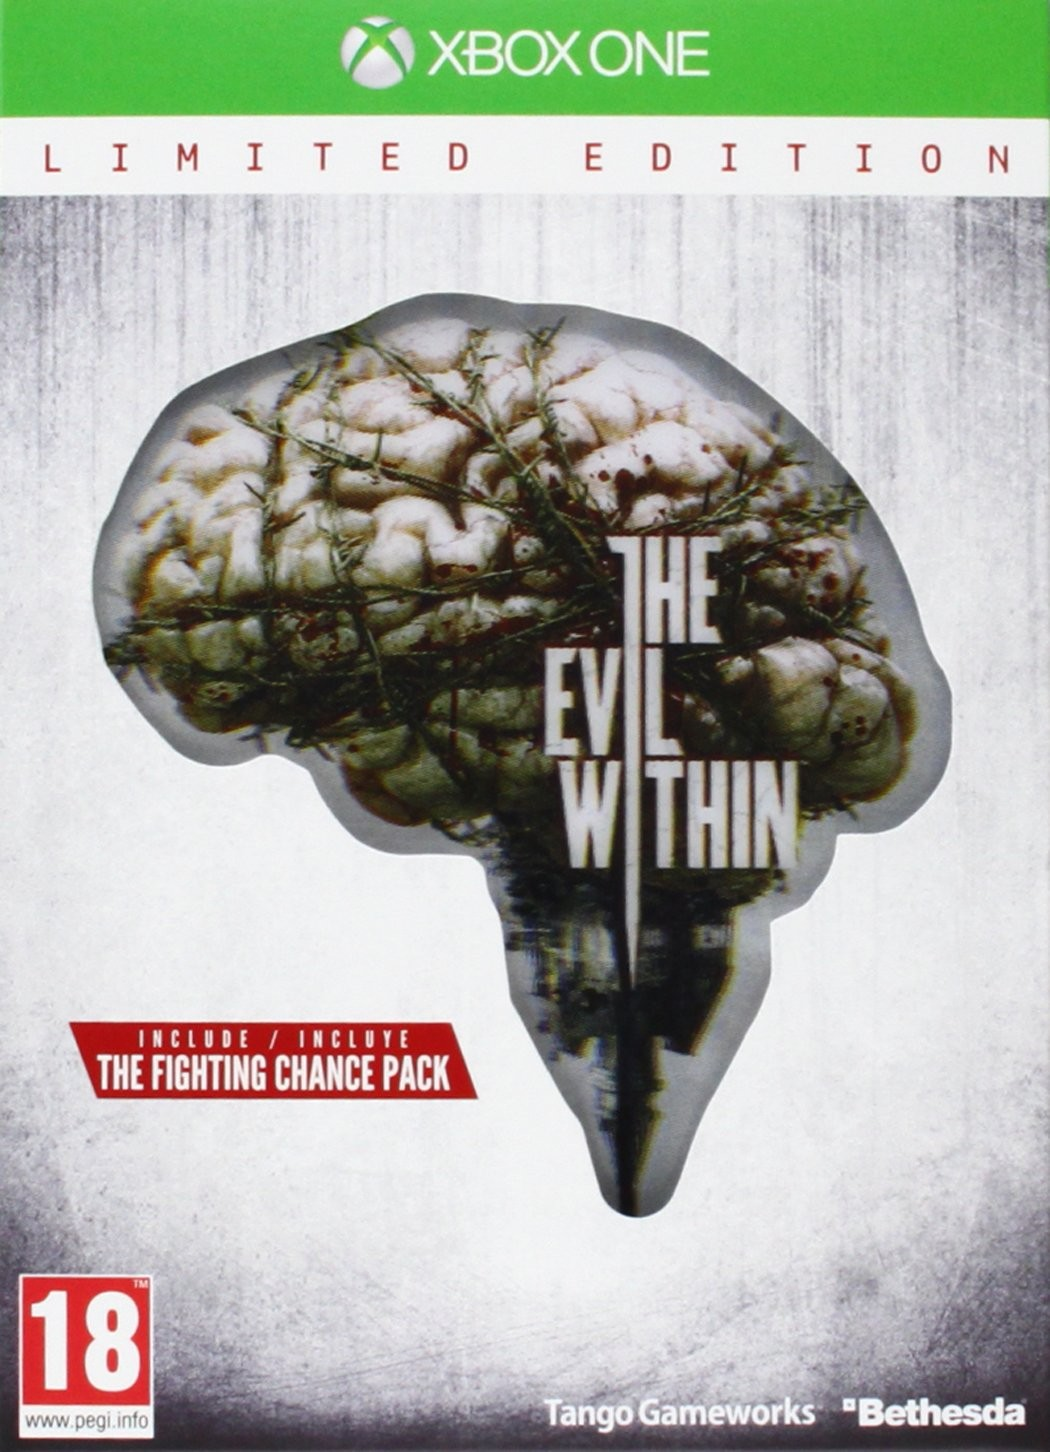 The Evil Within Limited Edition XONE